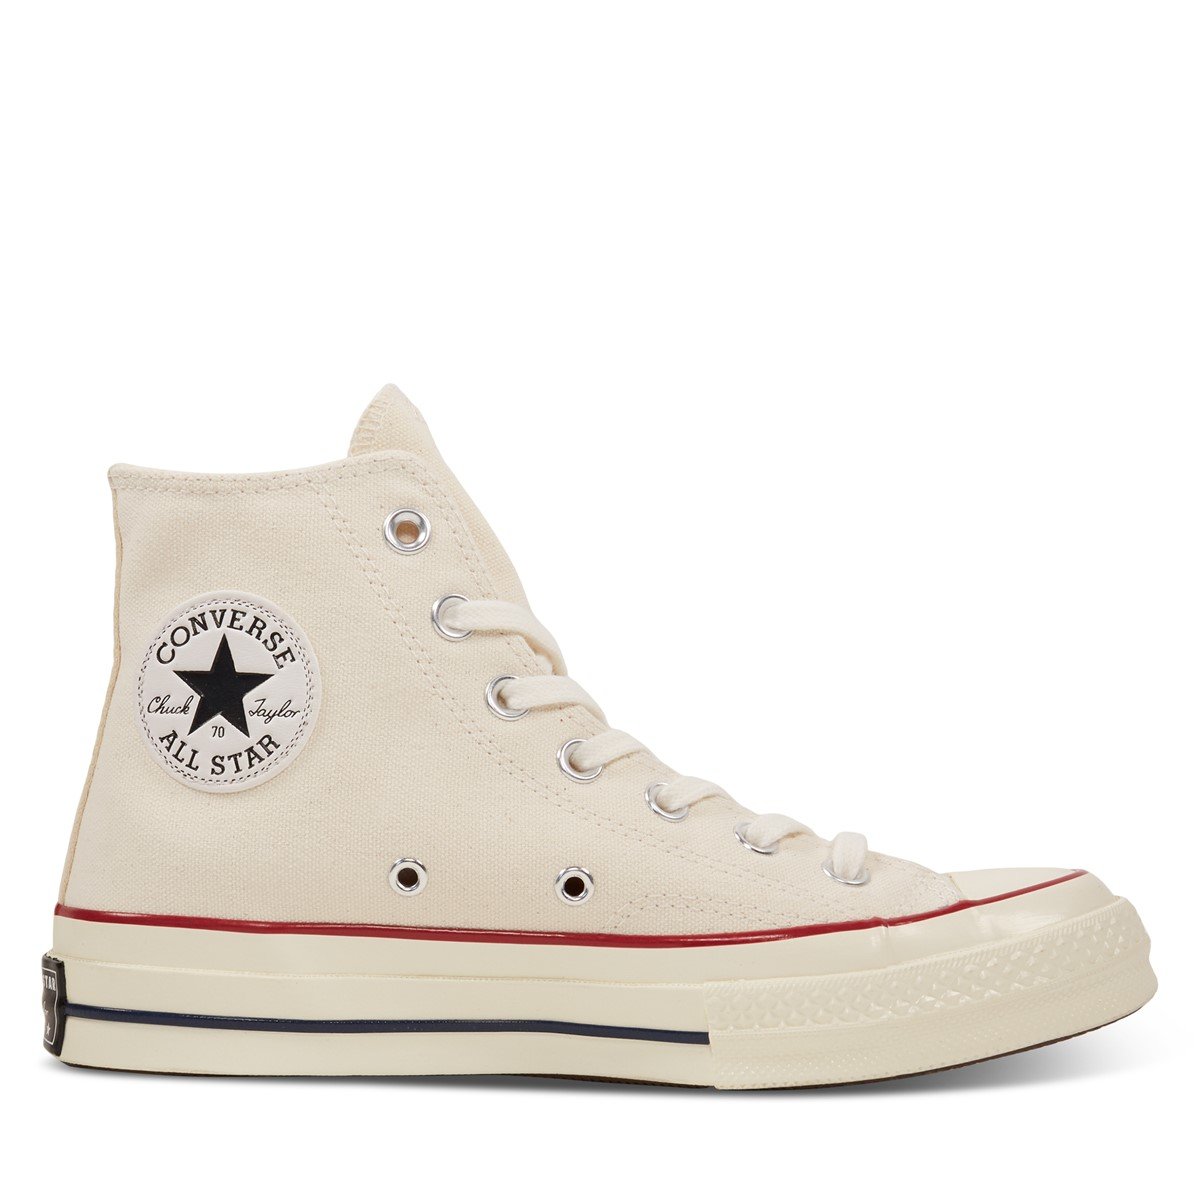 Chuck 70 Hi Sneakers in Chalk